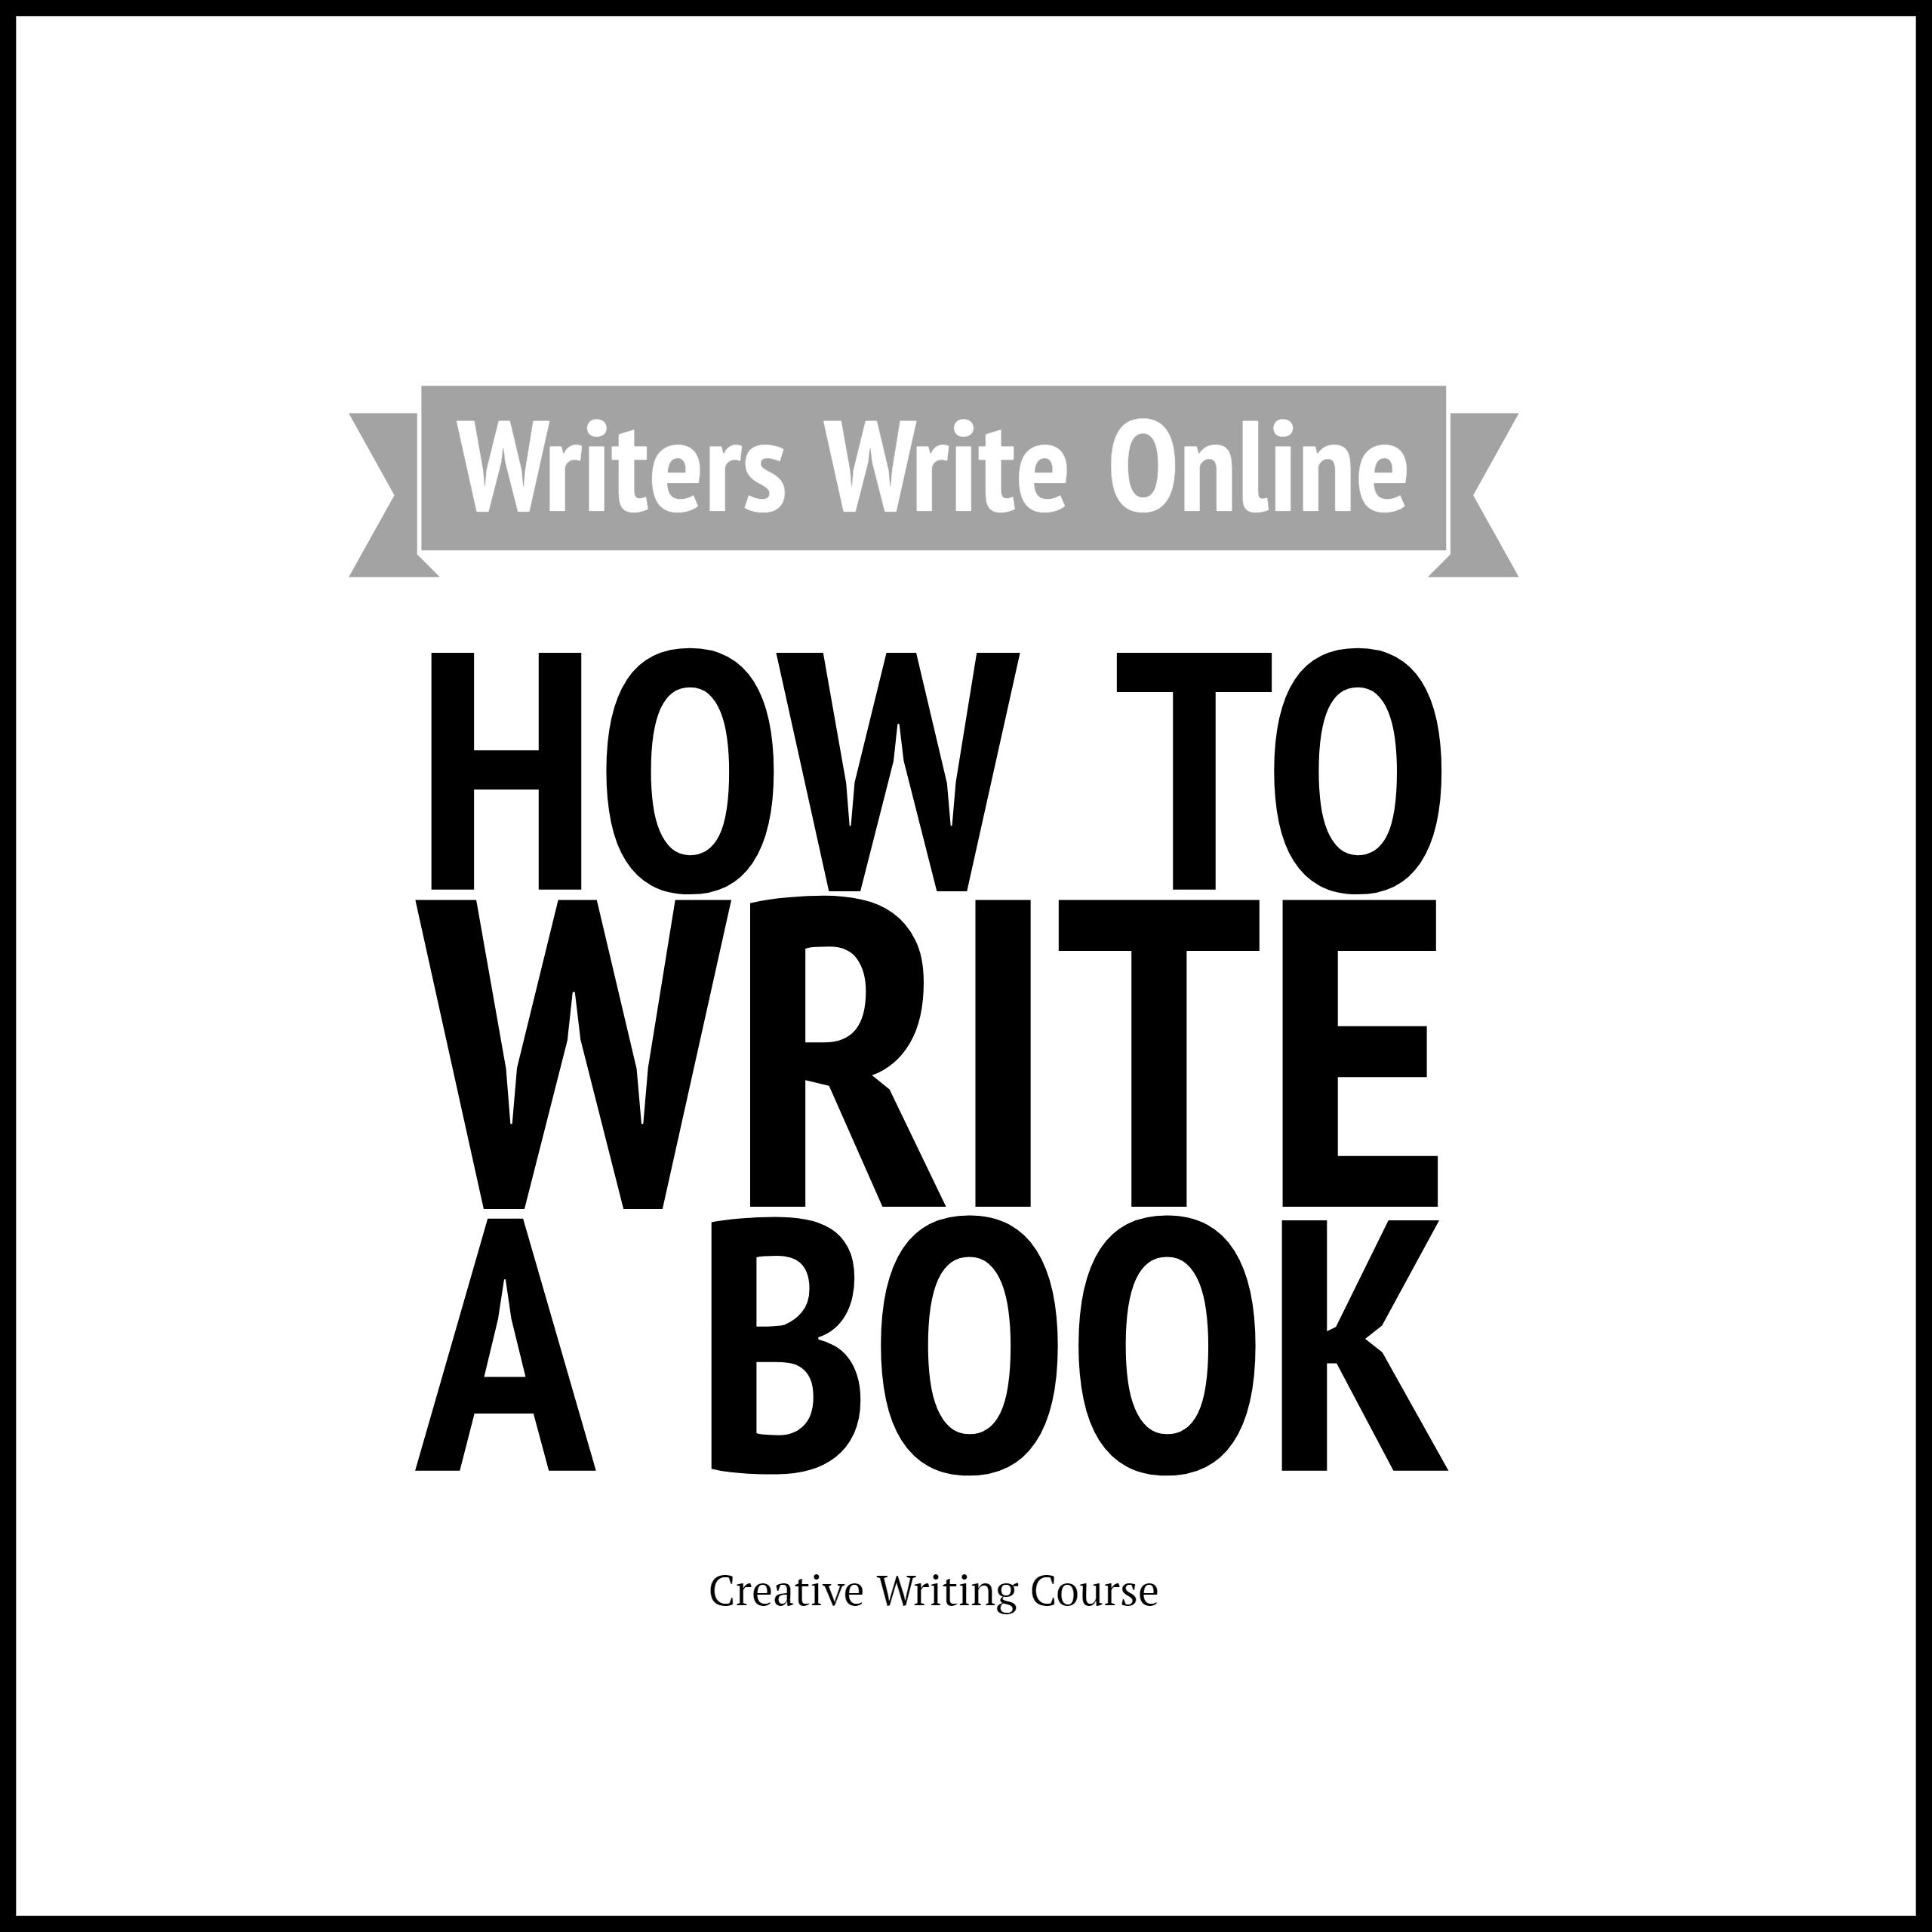 how to write a short story online - writers write